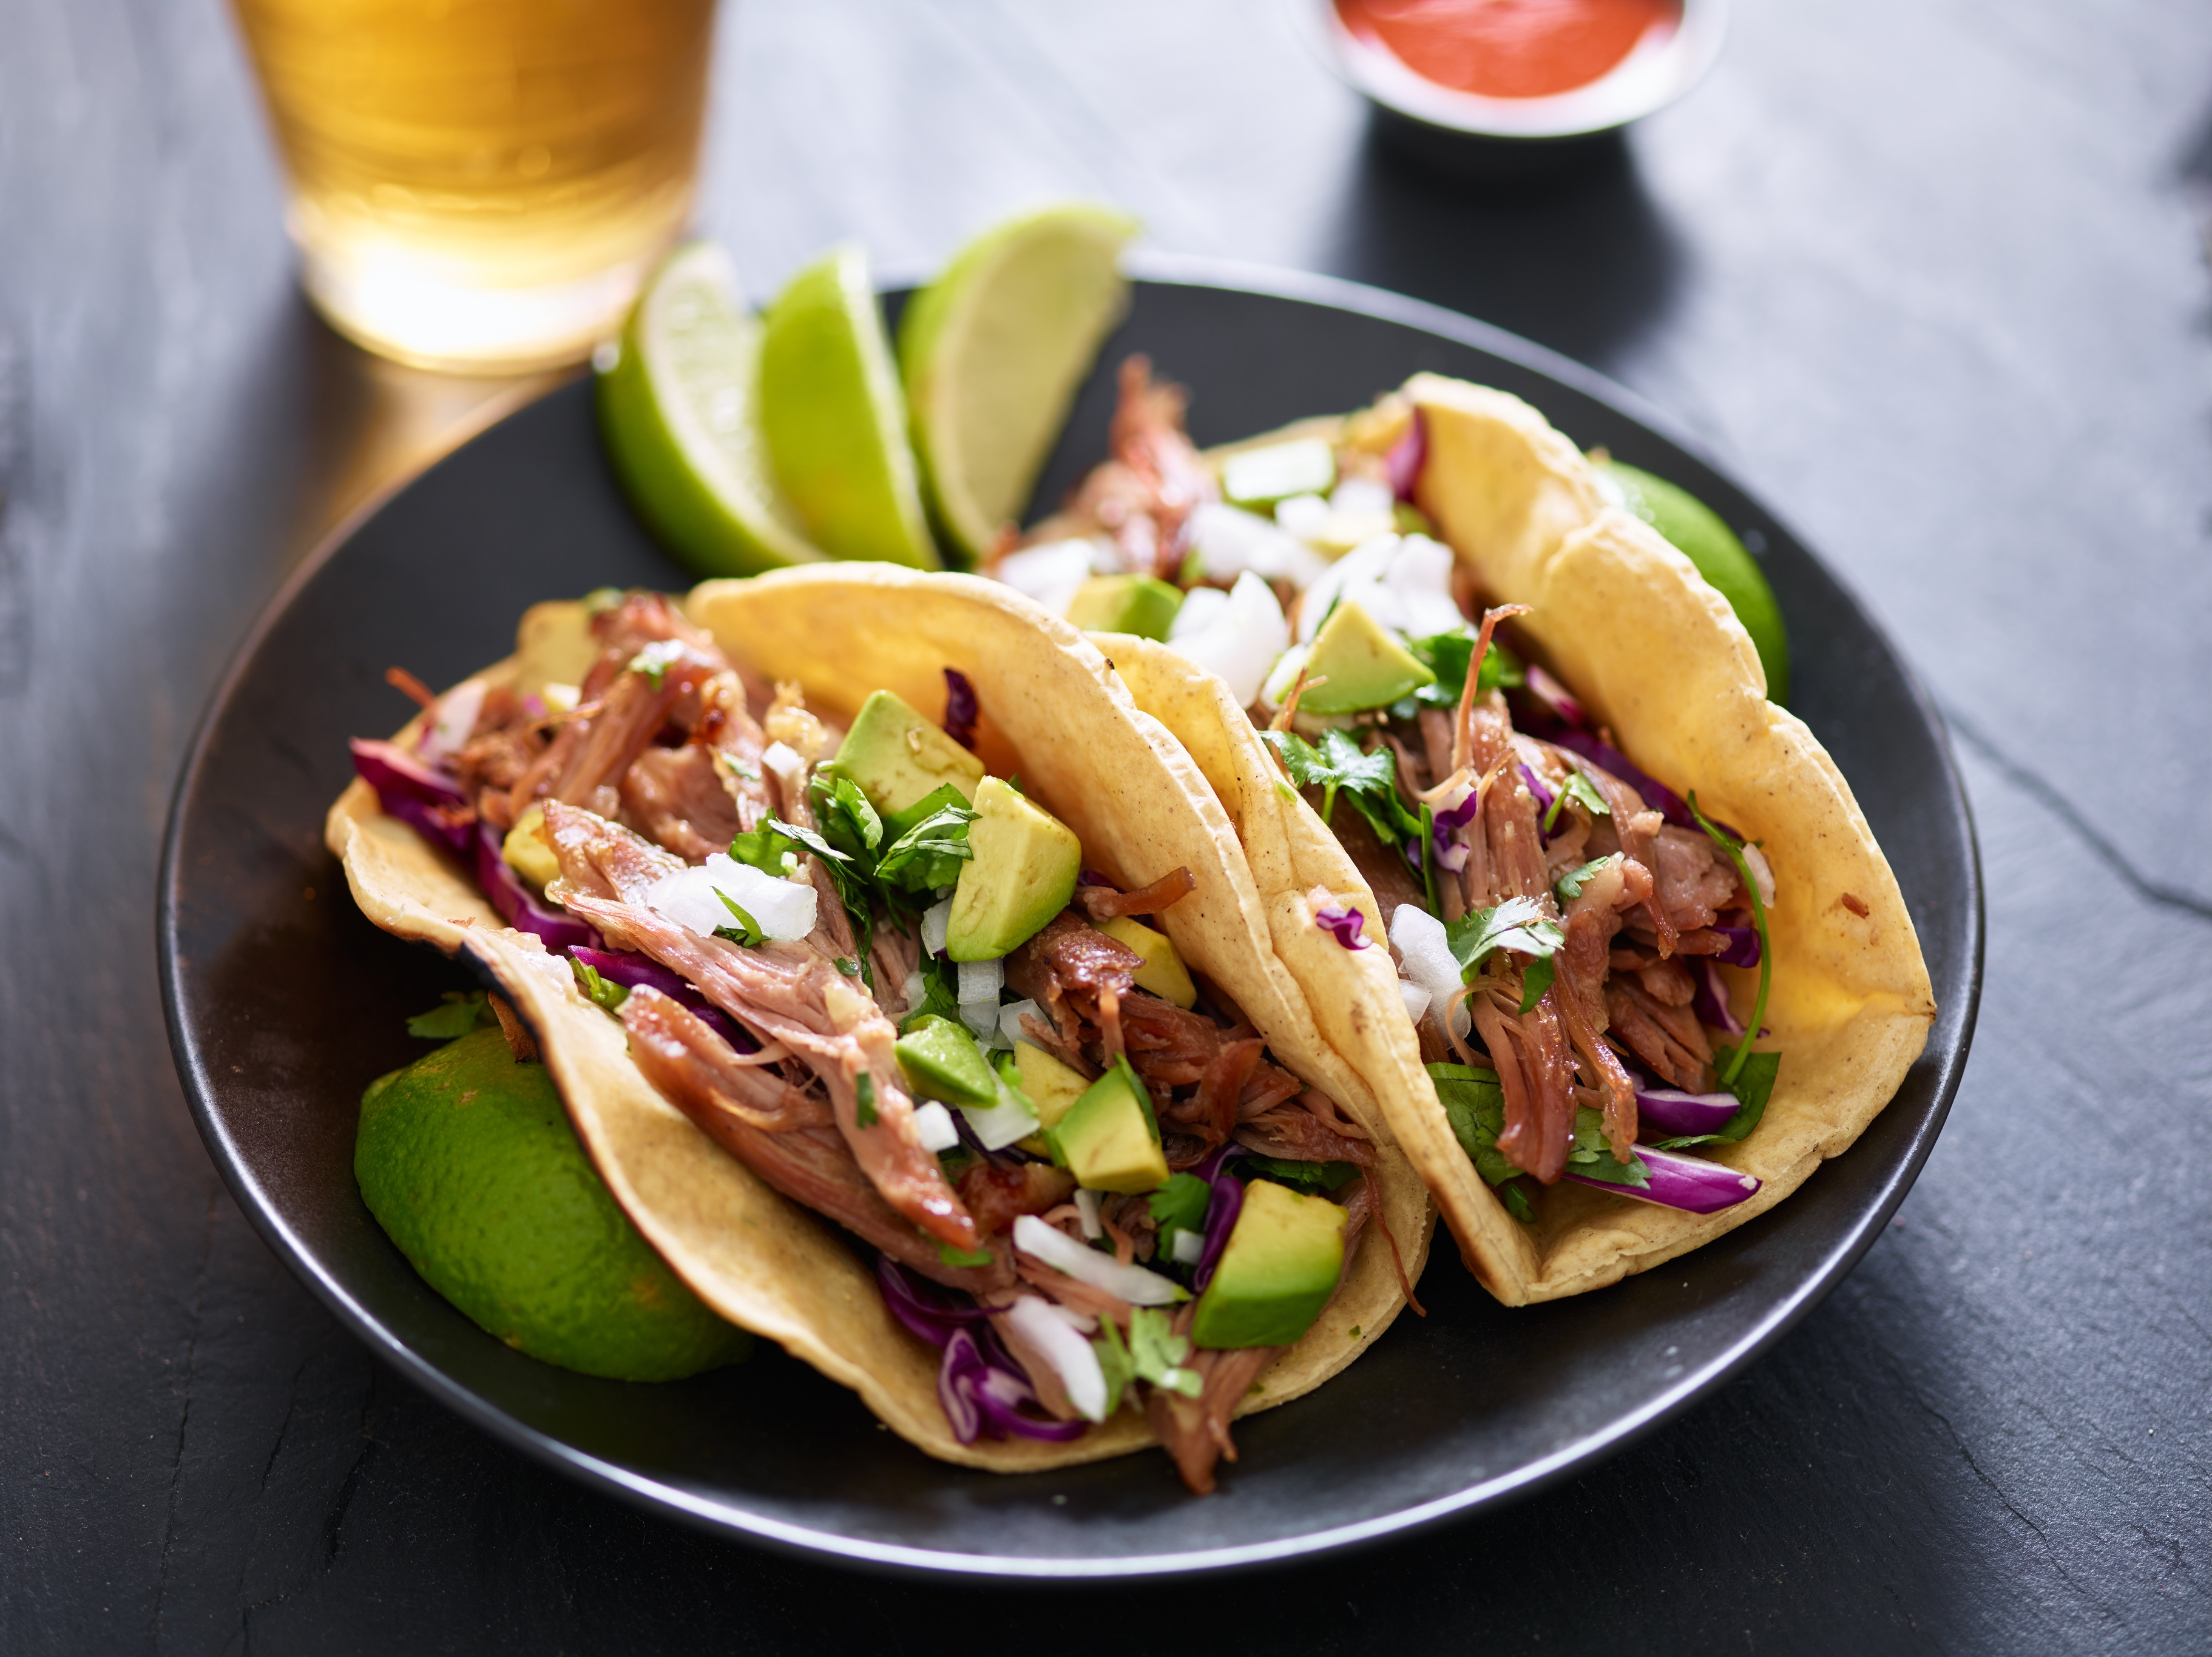 grilled carne asada tacos jjc chefs share mouthwatering cinco de mayo recipes mike mcgreal joliet junior college culinary arts